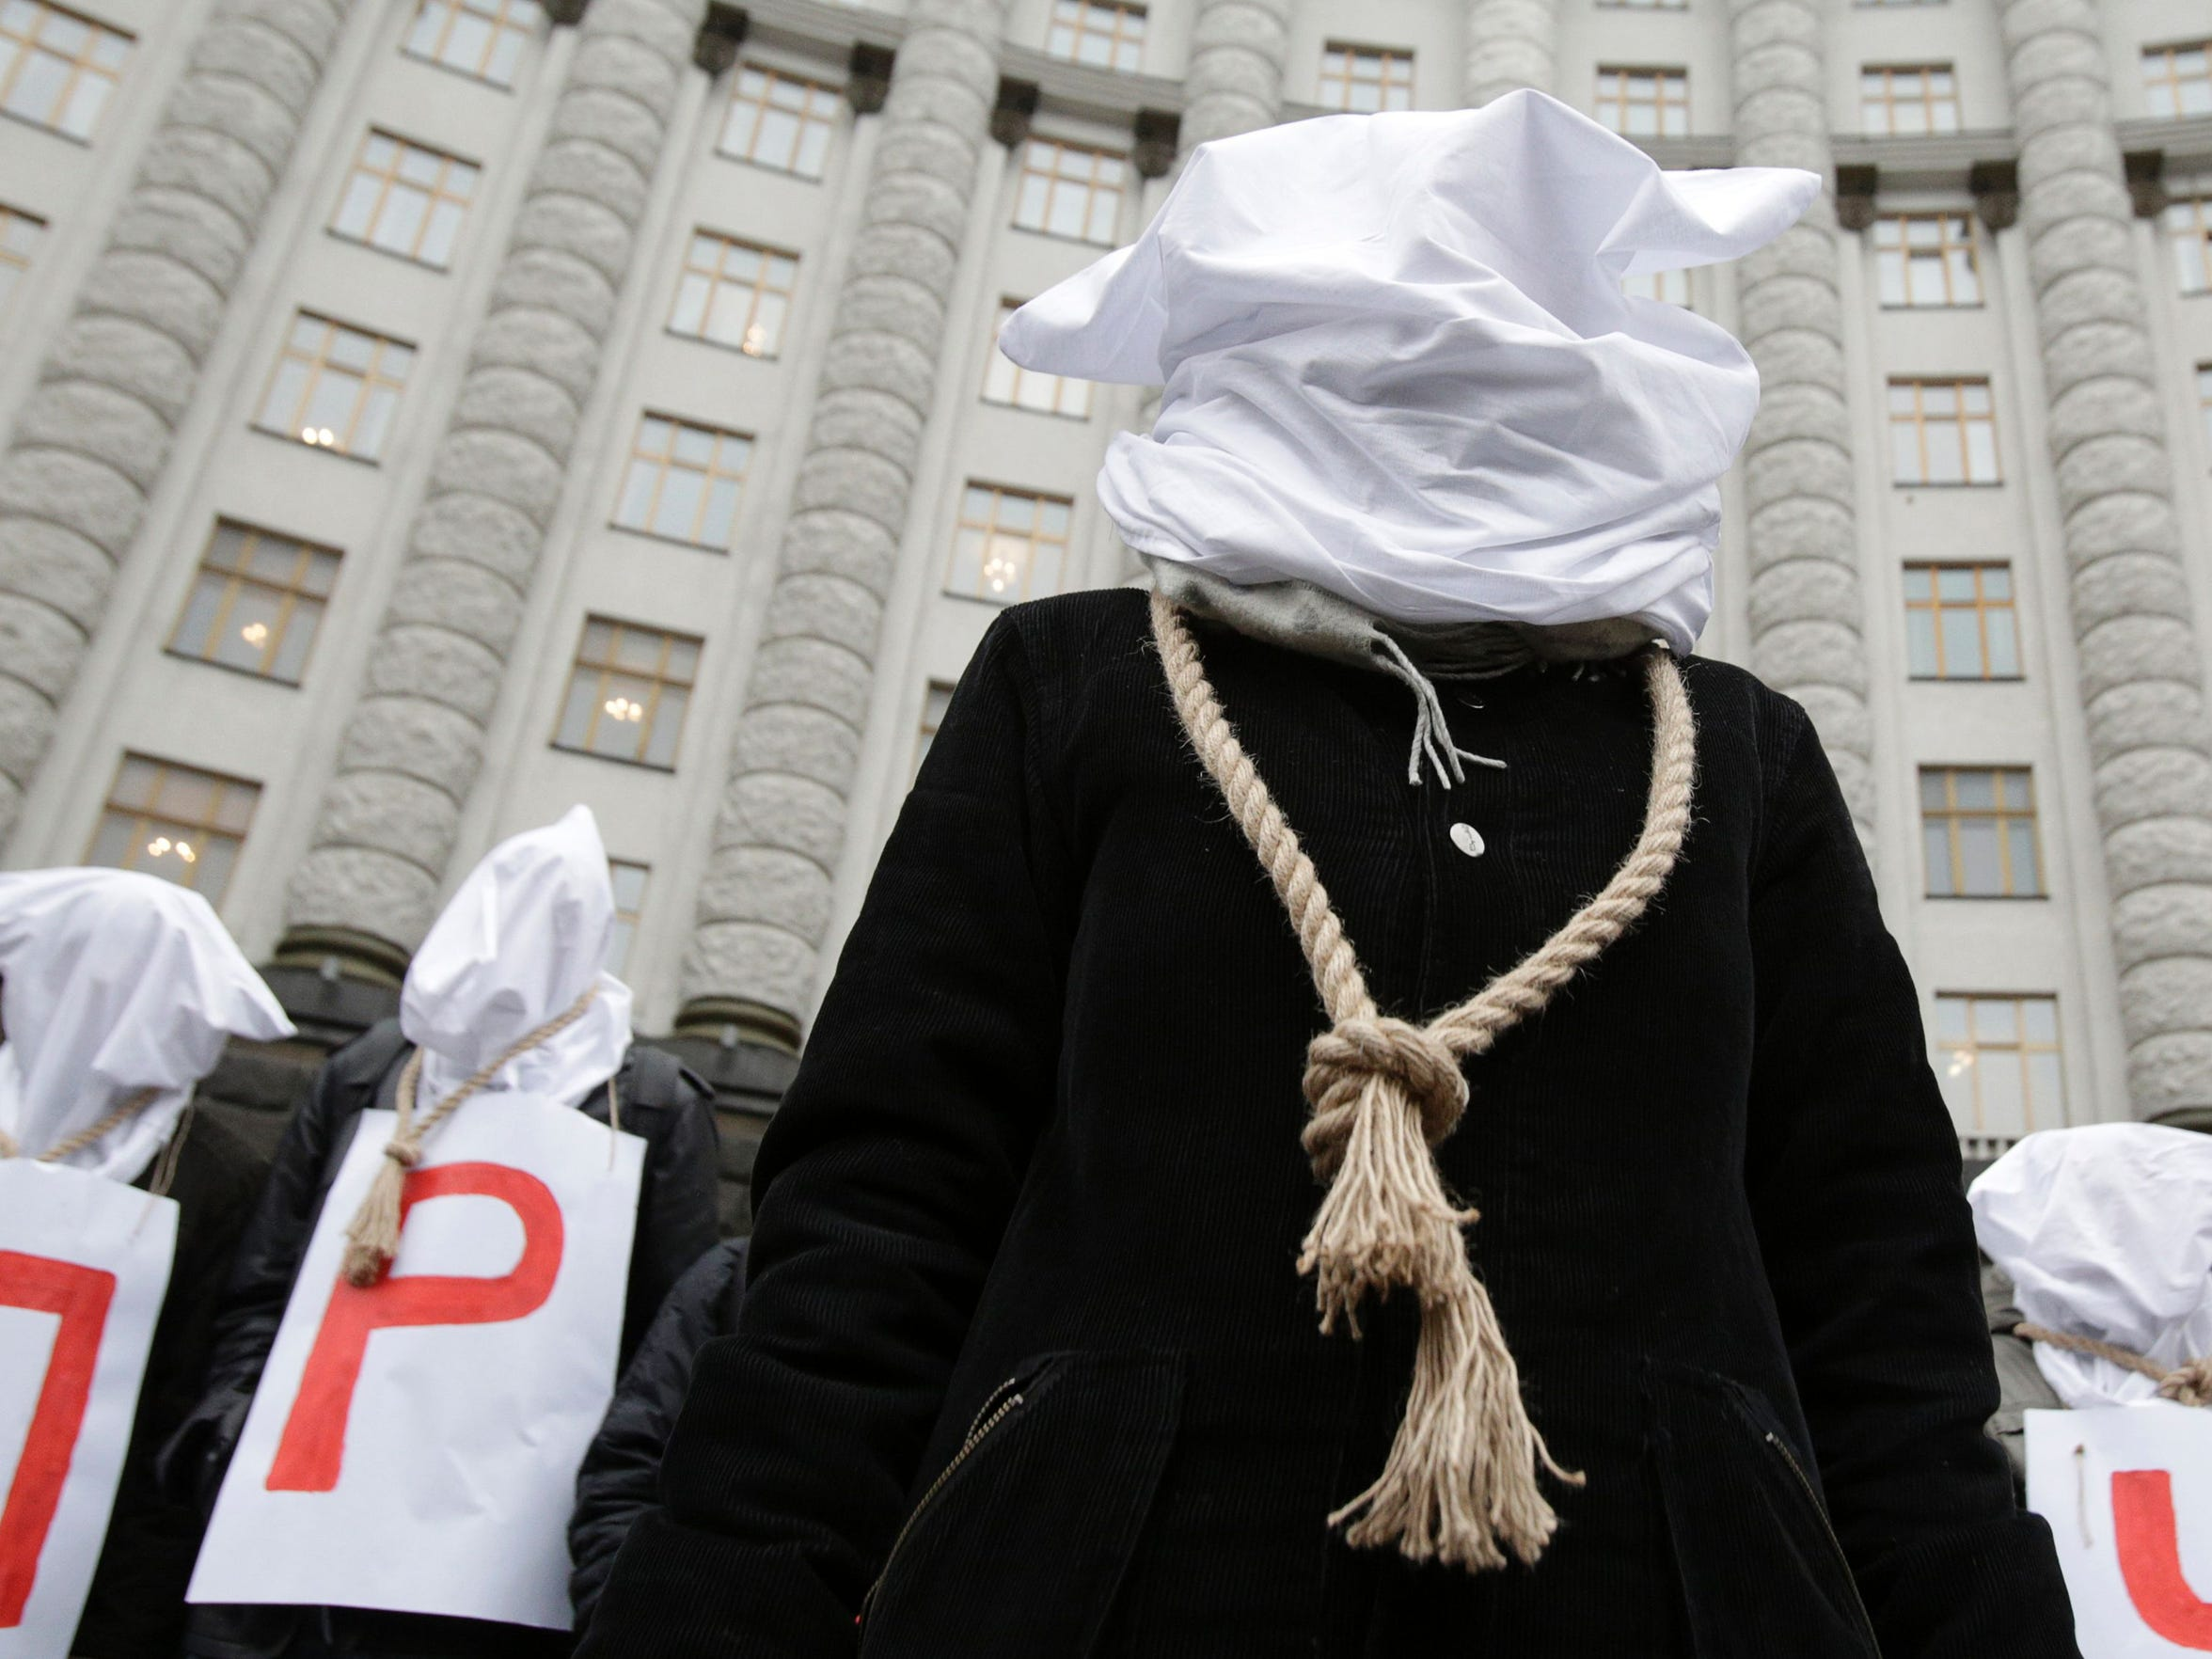 HIV/AIDS activists with the group 100% Life protest in front of a government building in Kyiv, Ukraine, in 2016 after a draft budget proposed cutting funding for drug procurement.